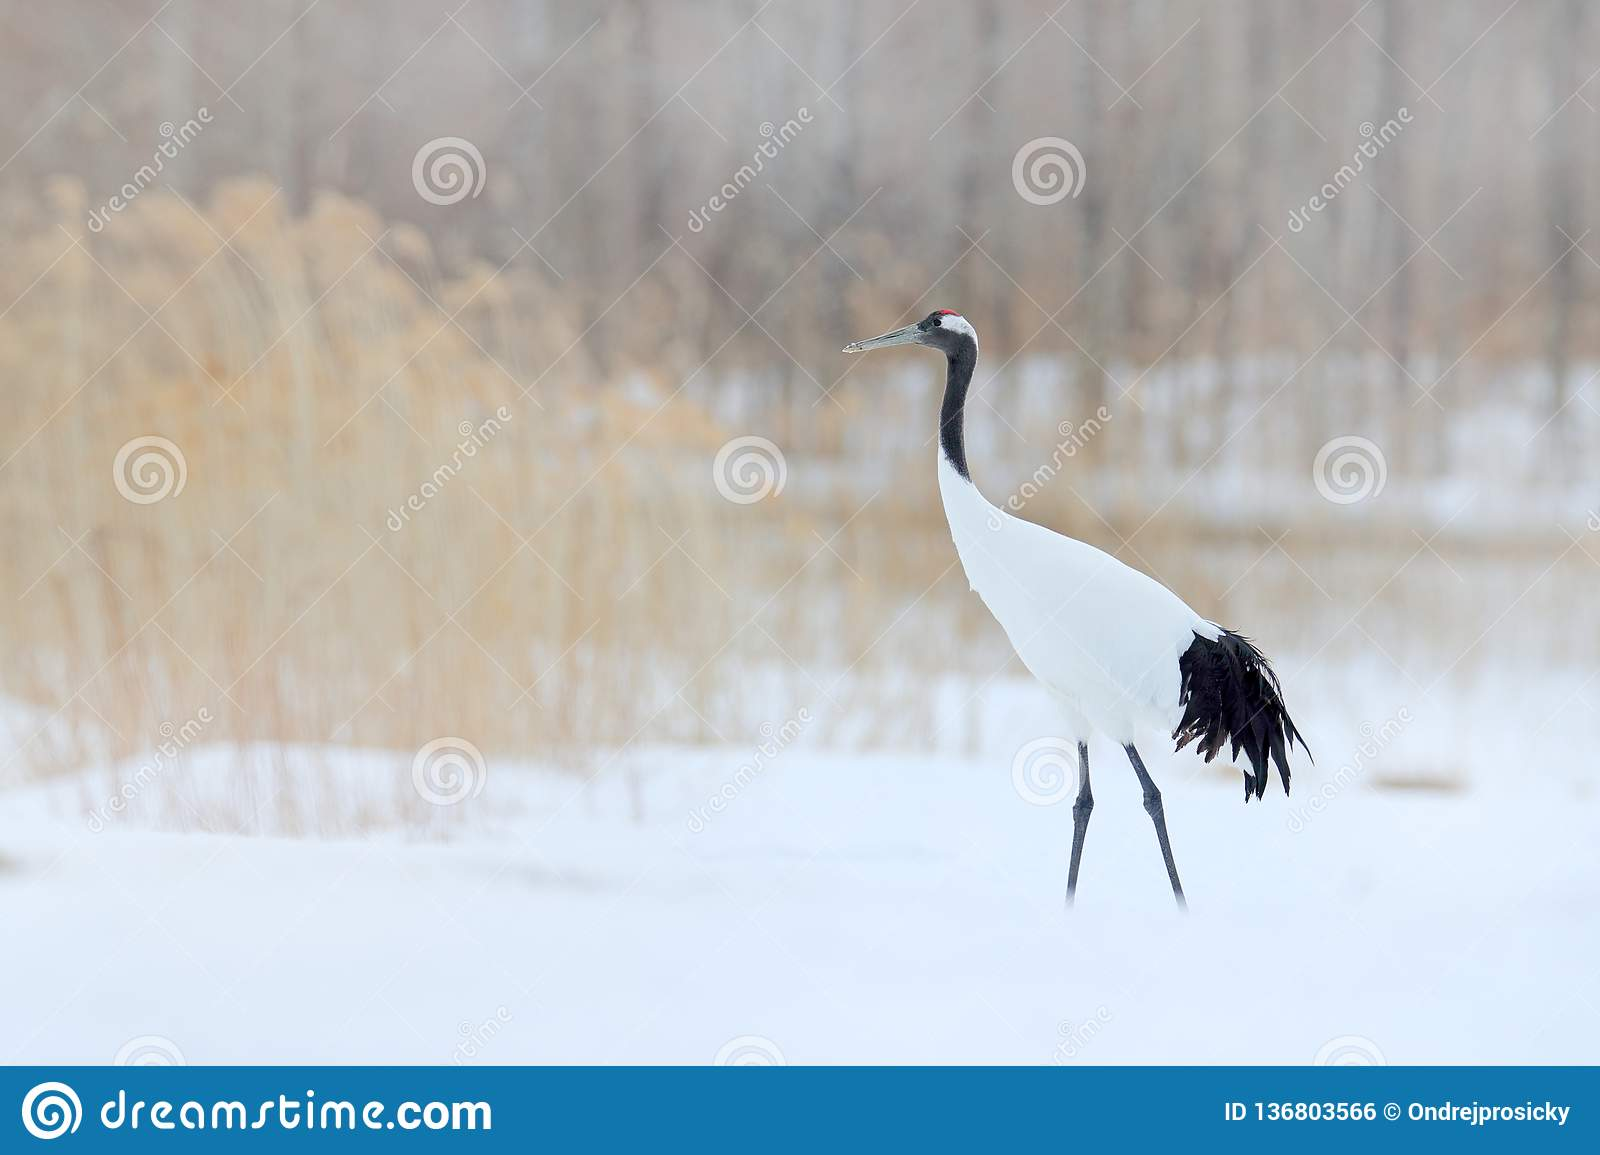 Snowfall Red-crowned crane in snow meadow, with snow storm, Hokkaido, Japan. Bird in fly, winter scene with snowflakes. Snow dance